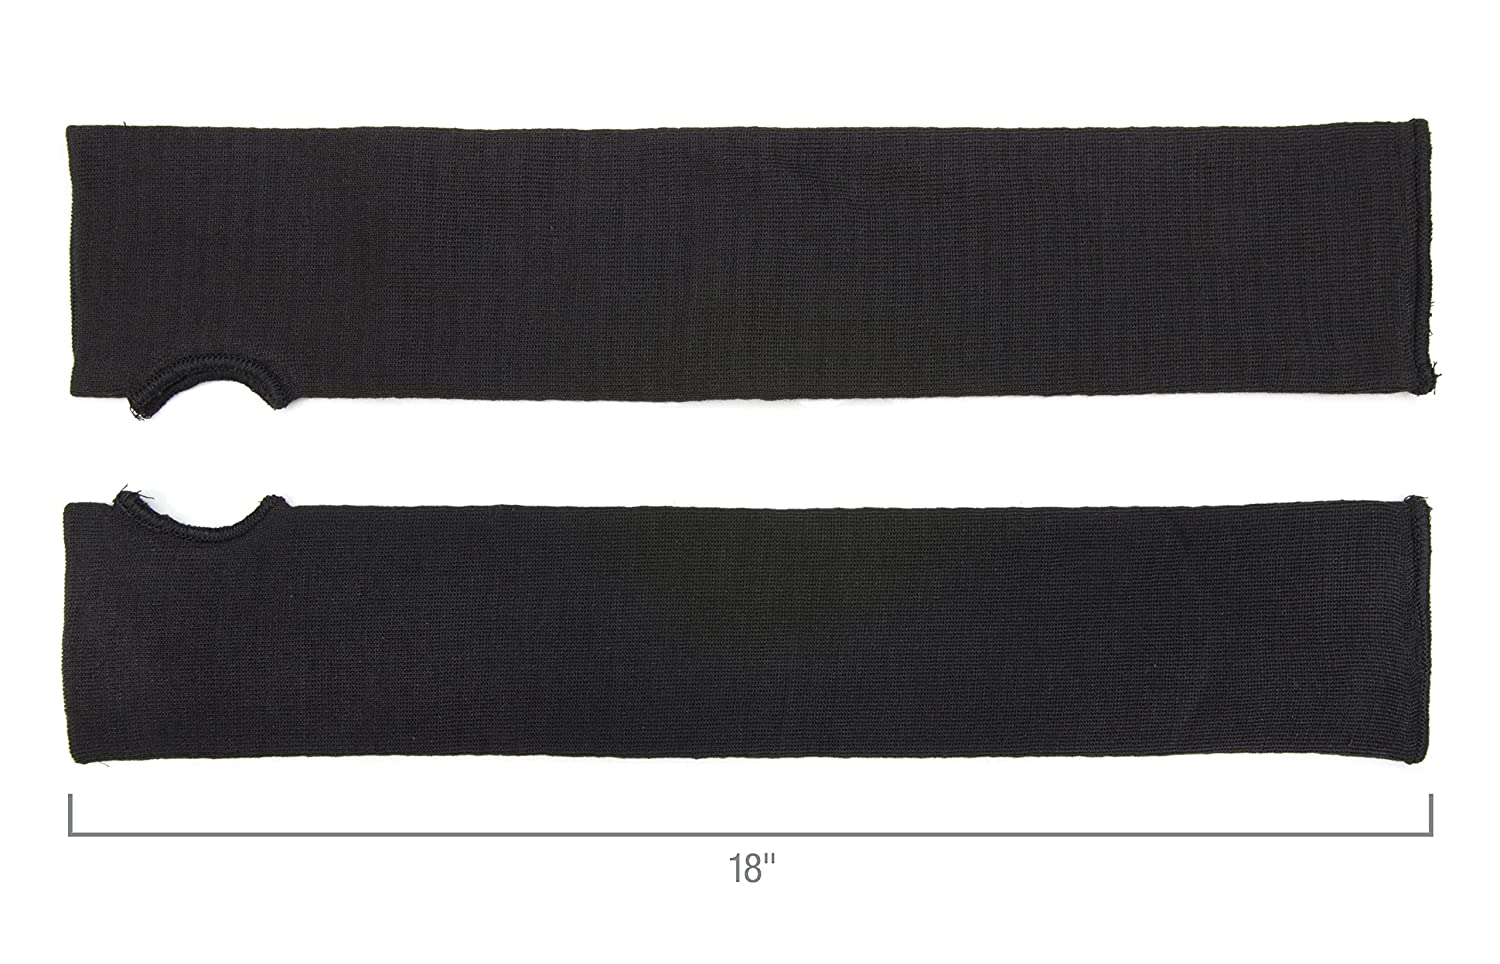 Cut-Resistant STEELMAN 60020 Kevlar Safety Sleeves ; Black, Protects Against Heat Double Layer Protection Pair Water Oil